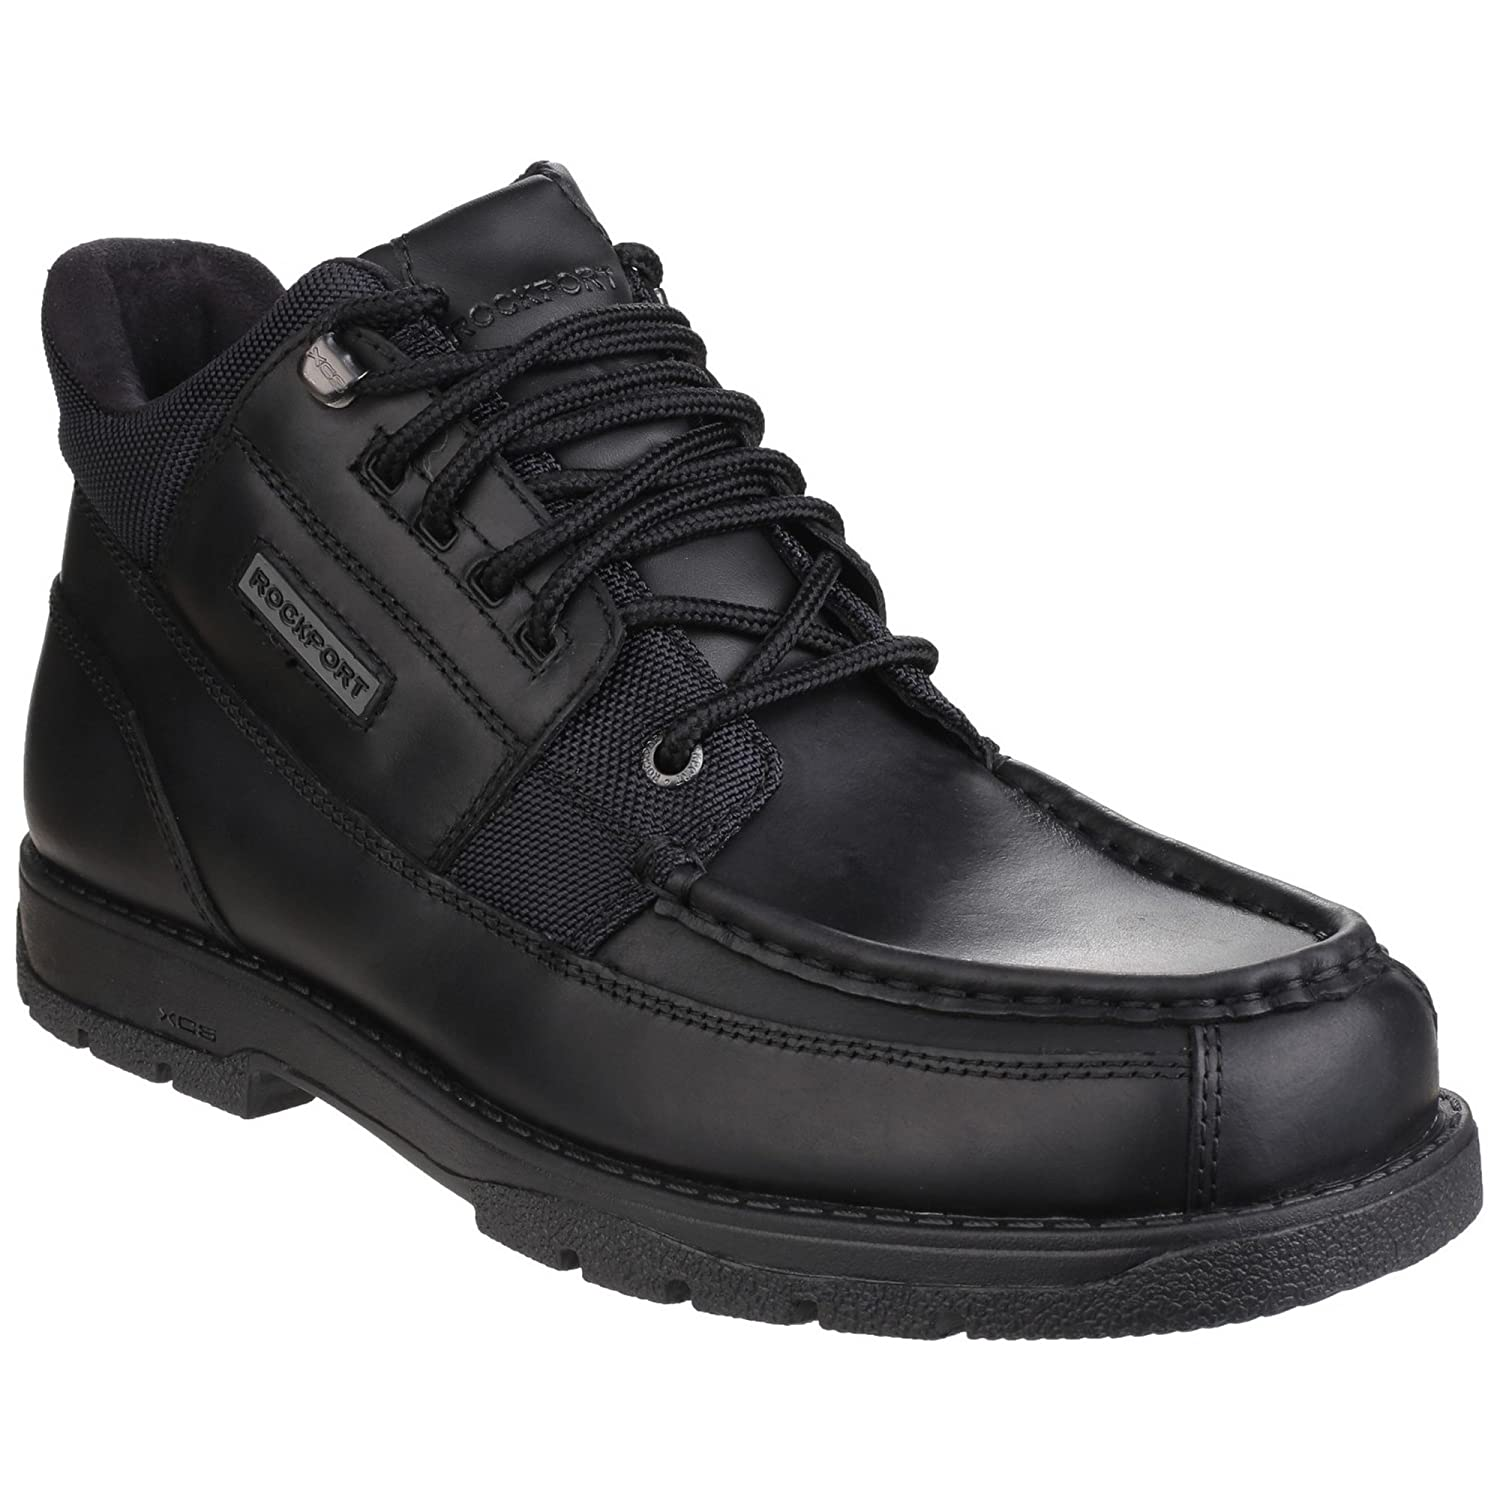 gassws3m047.ga: boots men. Whether you're looking for mens boots, womens boots, or kids boots BRUNO MARC NEW YORK Men's Military Motorcycle Combat Boots. by BRUNO MARC NEW YORK. $ - $ $ 33 $ 39 99 Prime. FREE Shipping on .